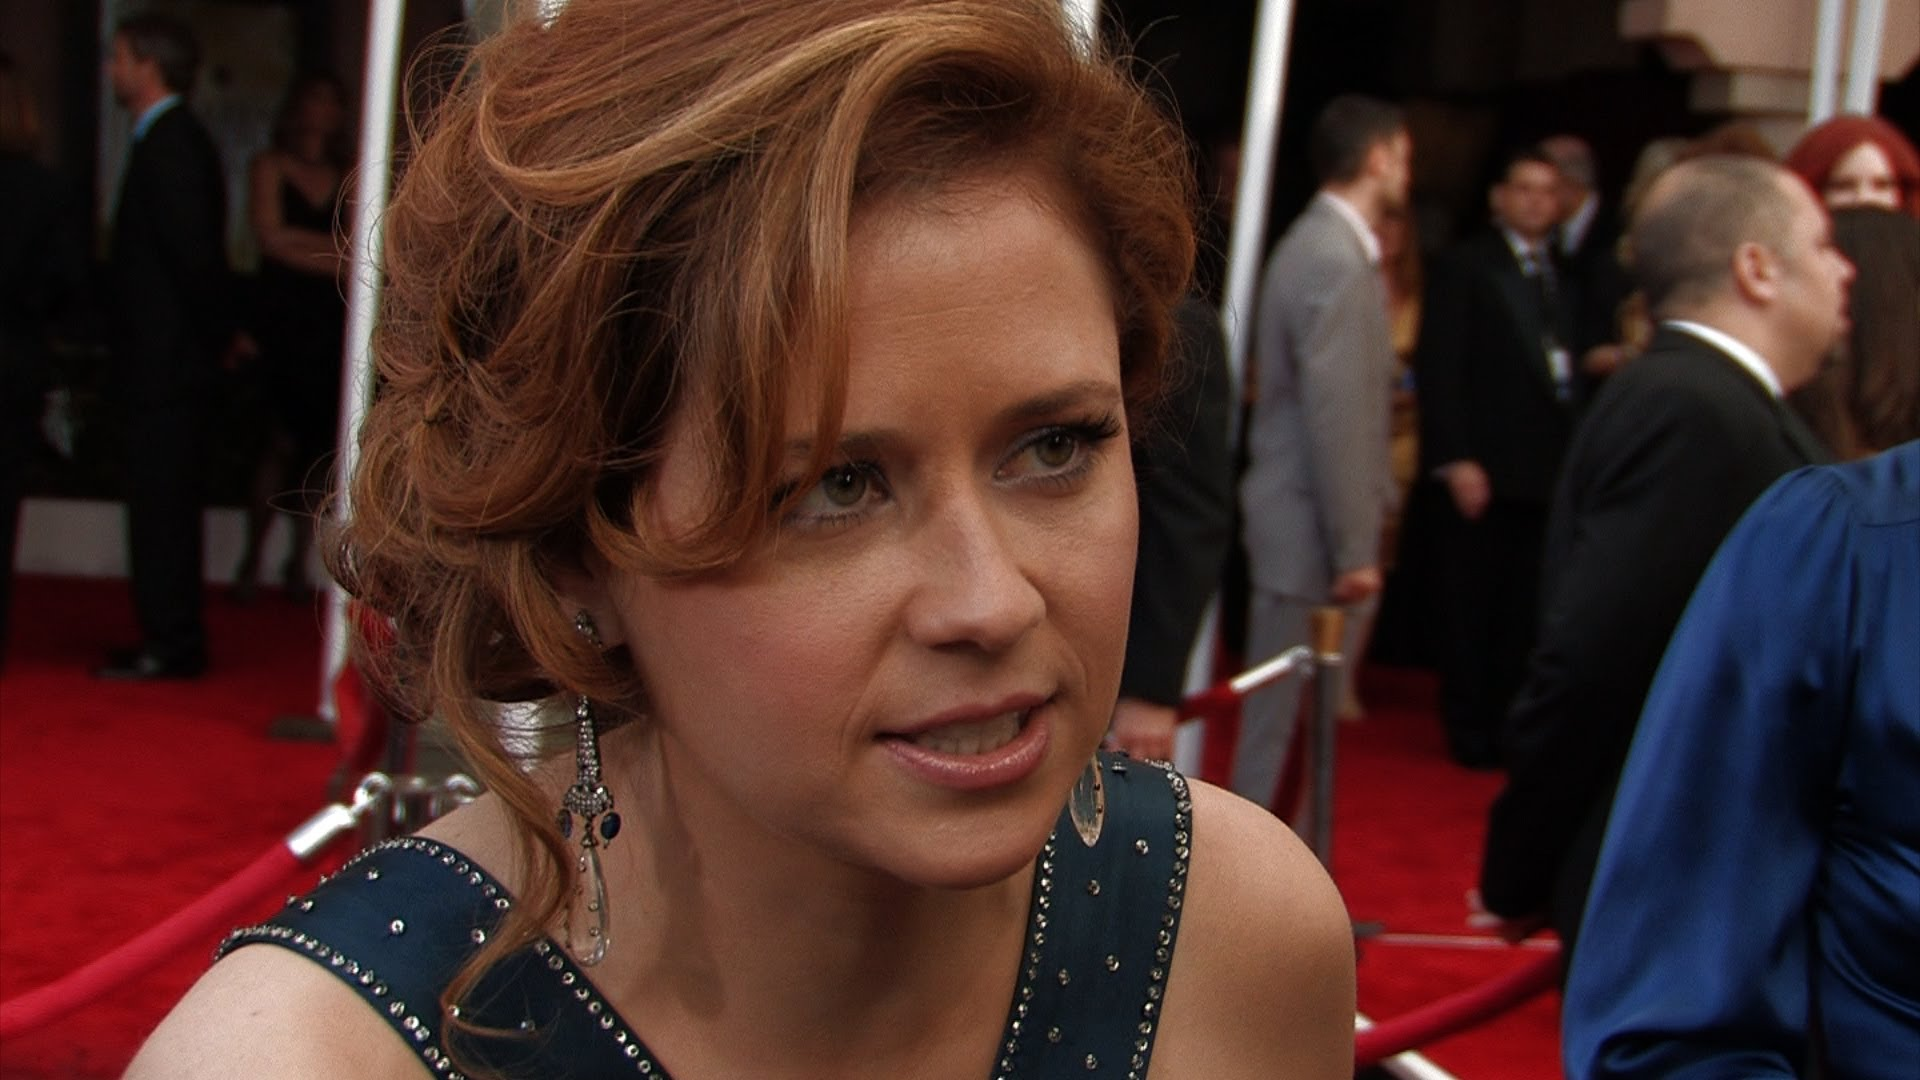 Jenna Fischer Full hd wallpapers